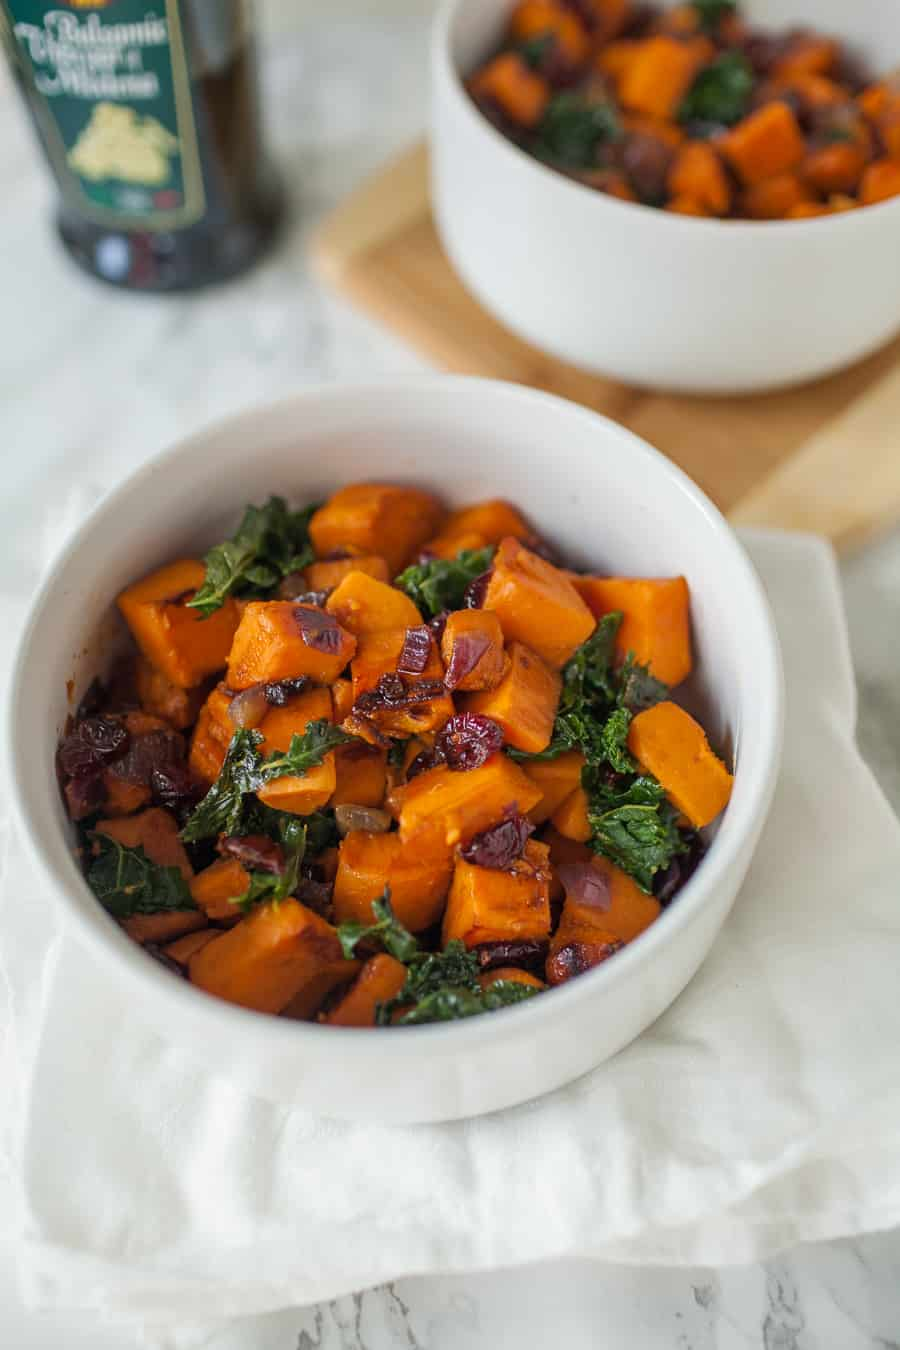 In need of a quick but delicious side dish for dinner? This sweet potato and kale saut? is perfectly delicious and easy to make. The sweet potatoes are the star of this show, but the red onions, cranberries, kale and a splash of balsamic vinegar make this dish robust in flavor! easy side dish | side dish ideas | sweet potatoes | kale | red onions | onions | cranberries | balsamic vinegar